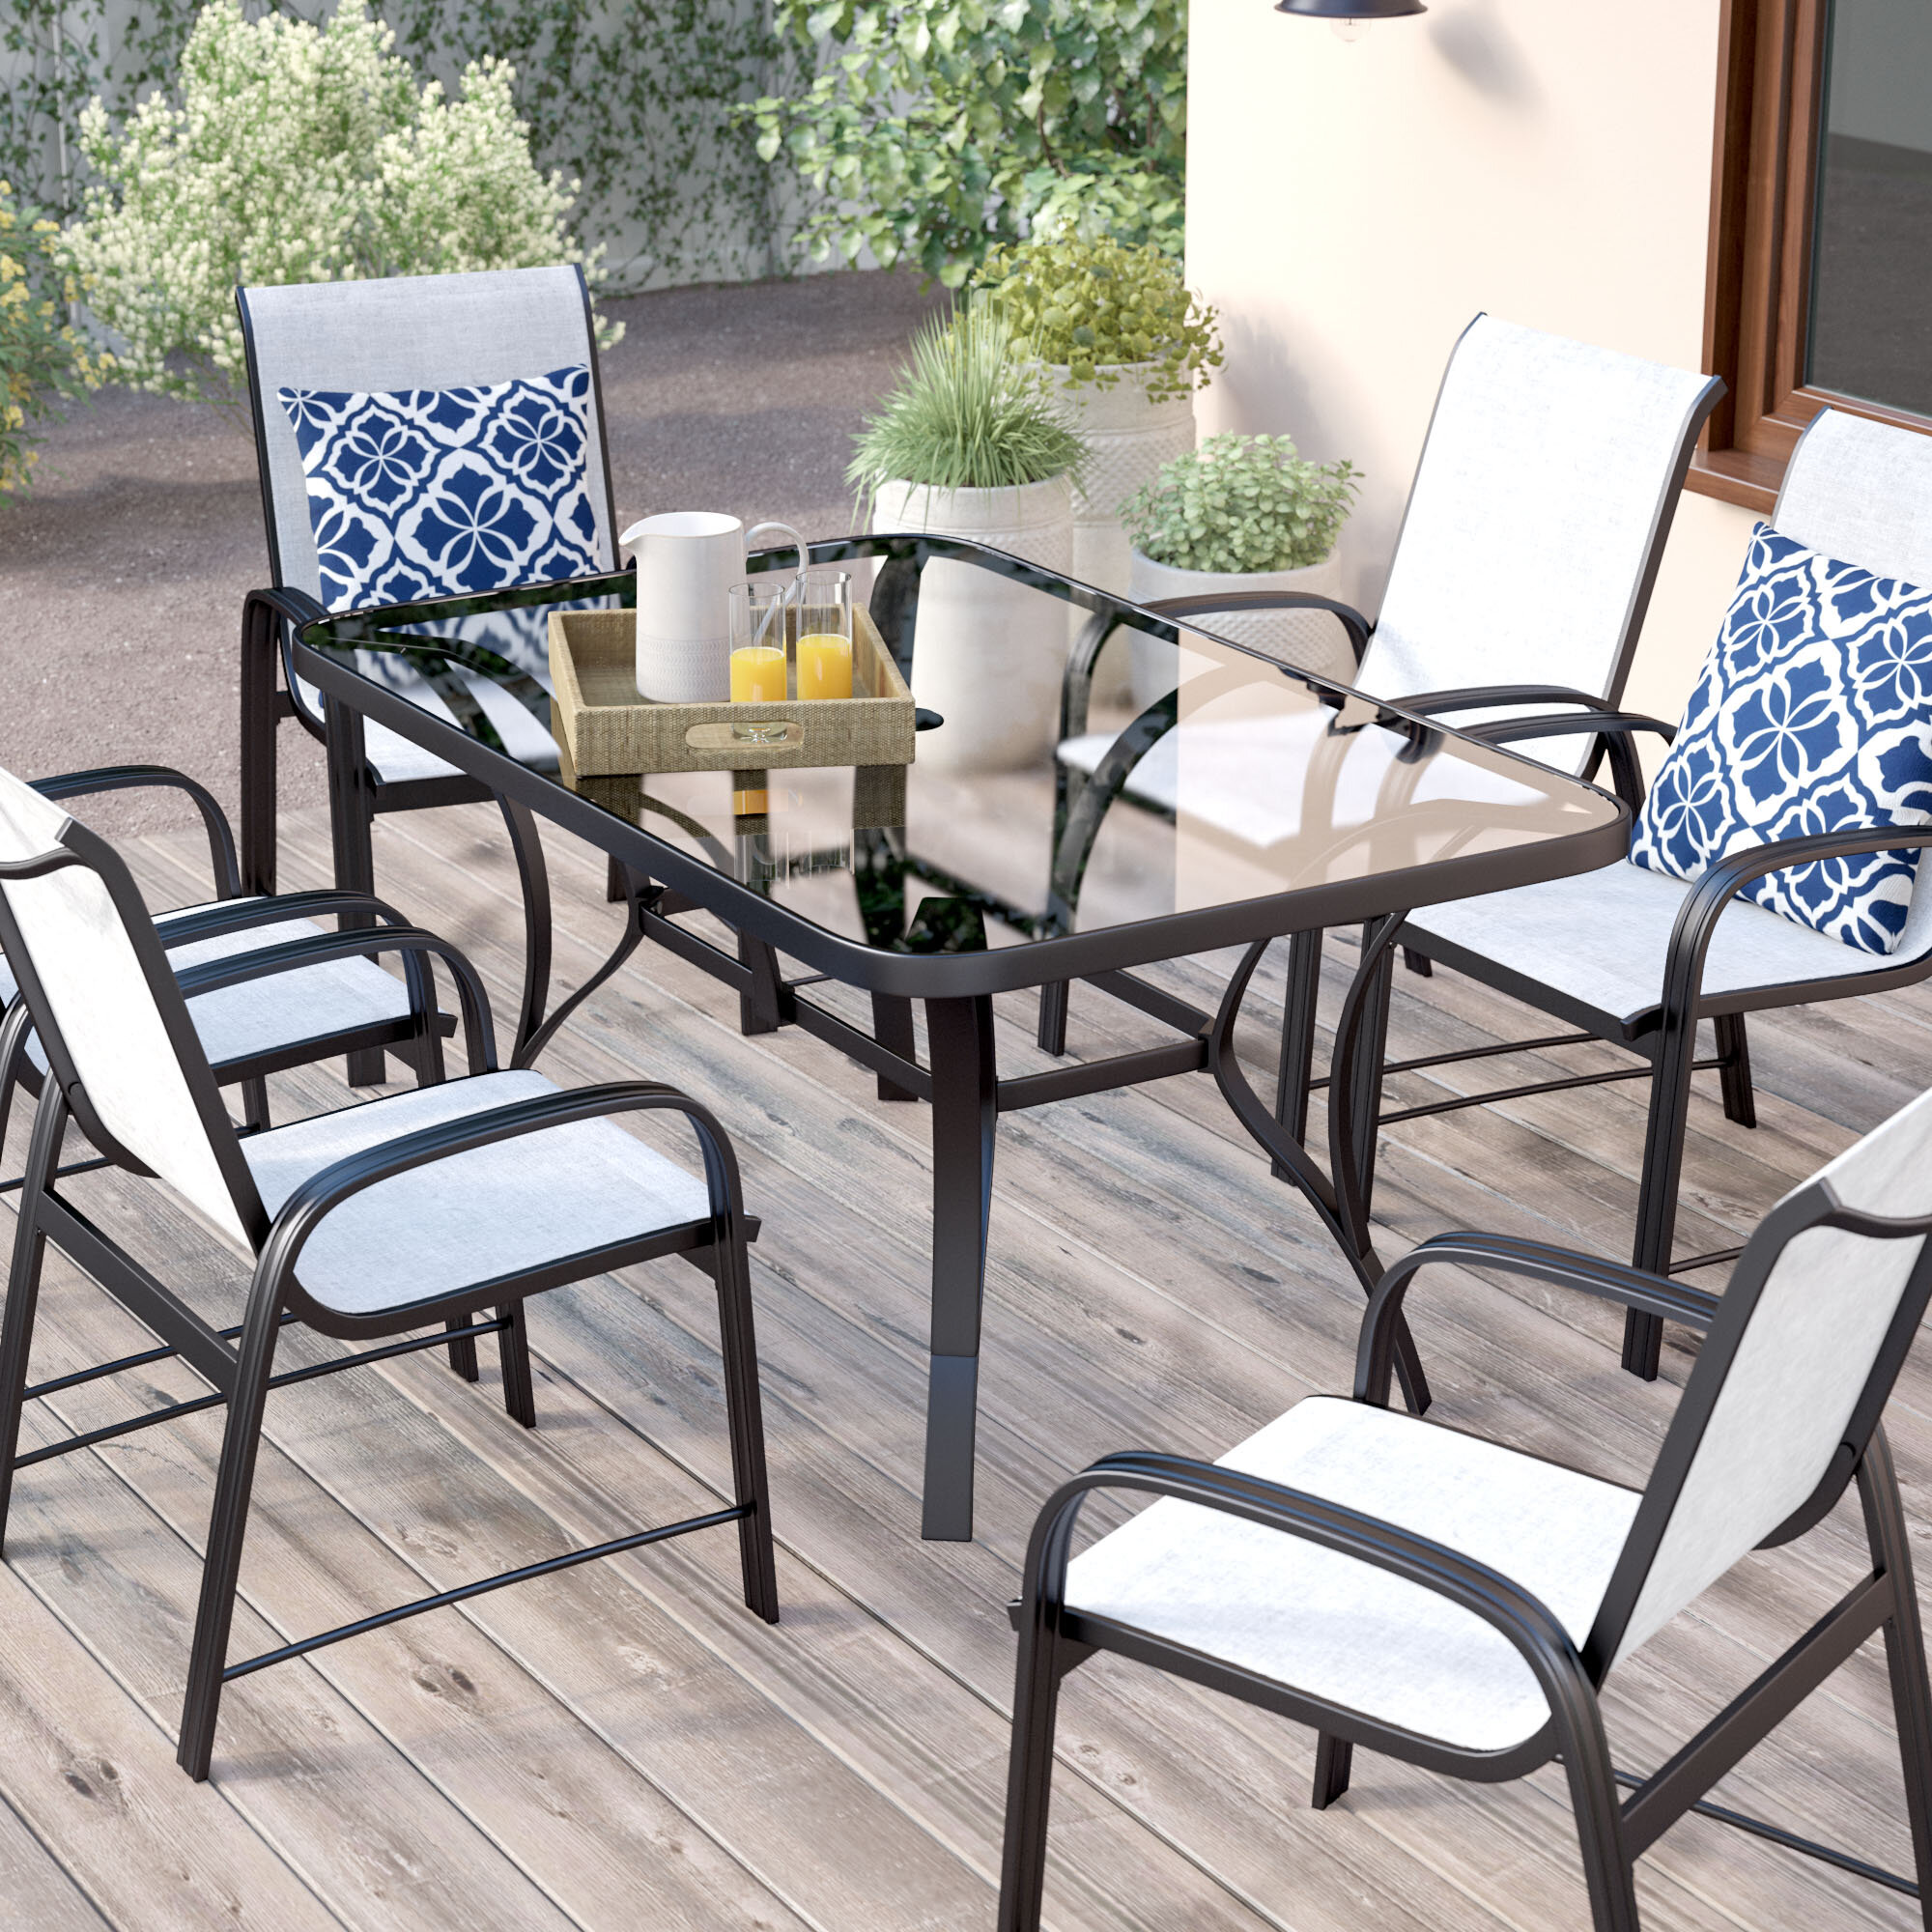 meridian designs tables design additional room glamorous piece sets chair dining co patio round set outdoor with nongzi